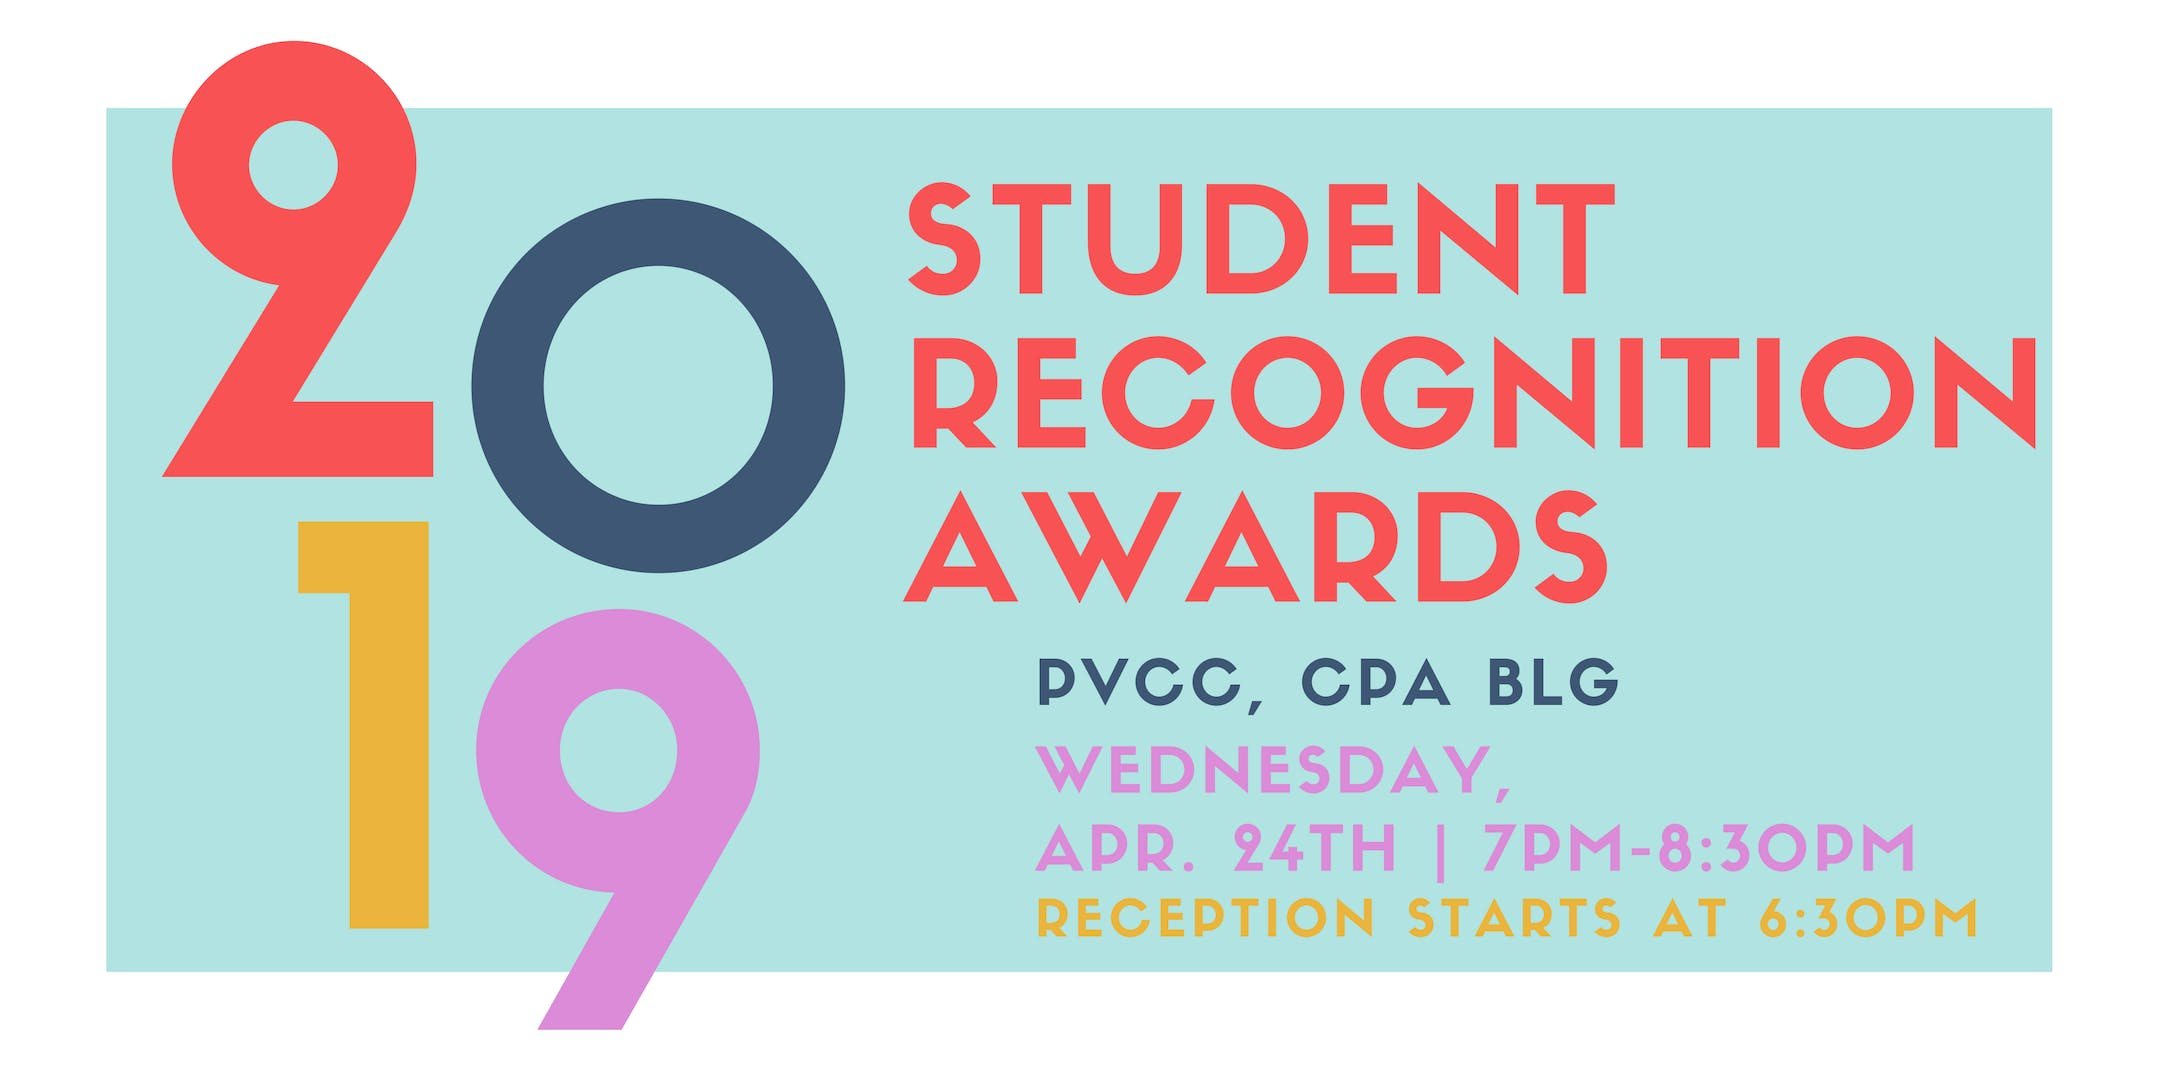 PVCC Student Recognition Awards